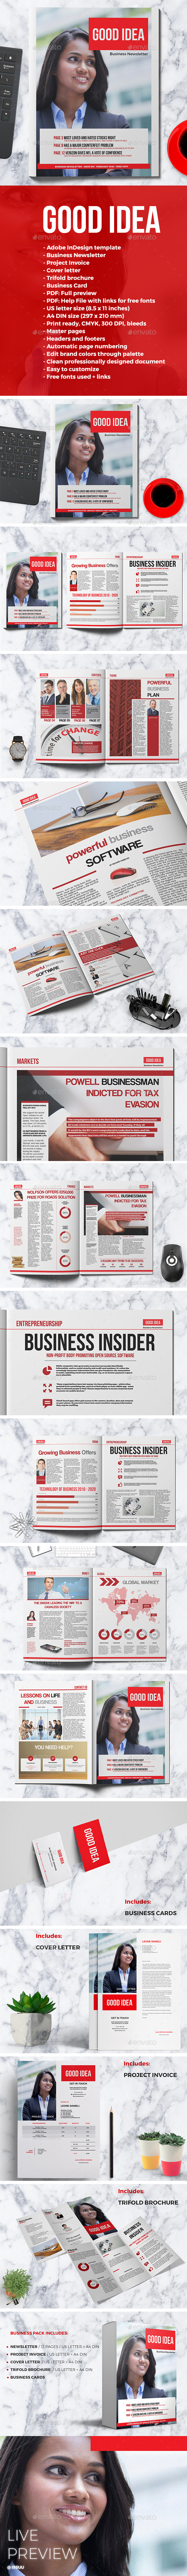 GOOD IDEA Newsletter - Newsletters Print Templates